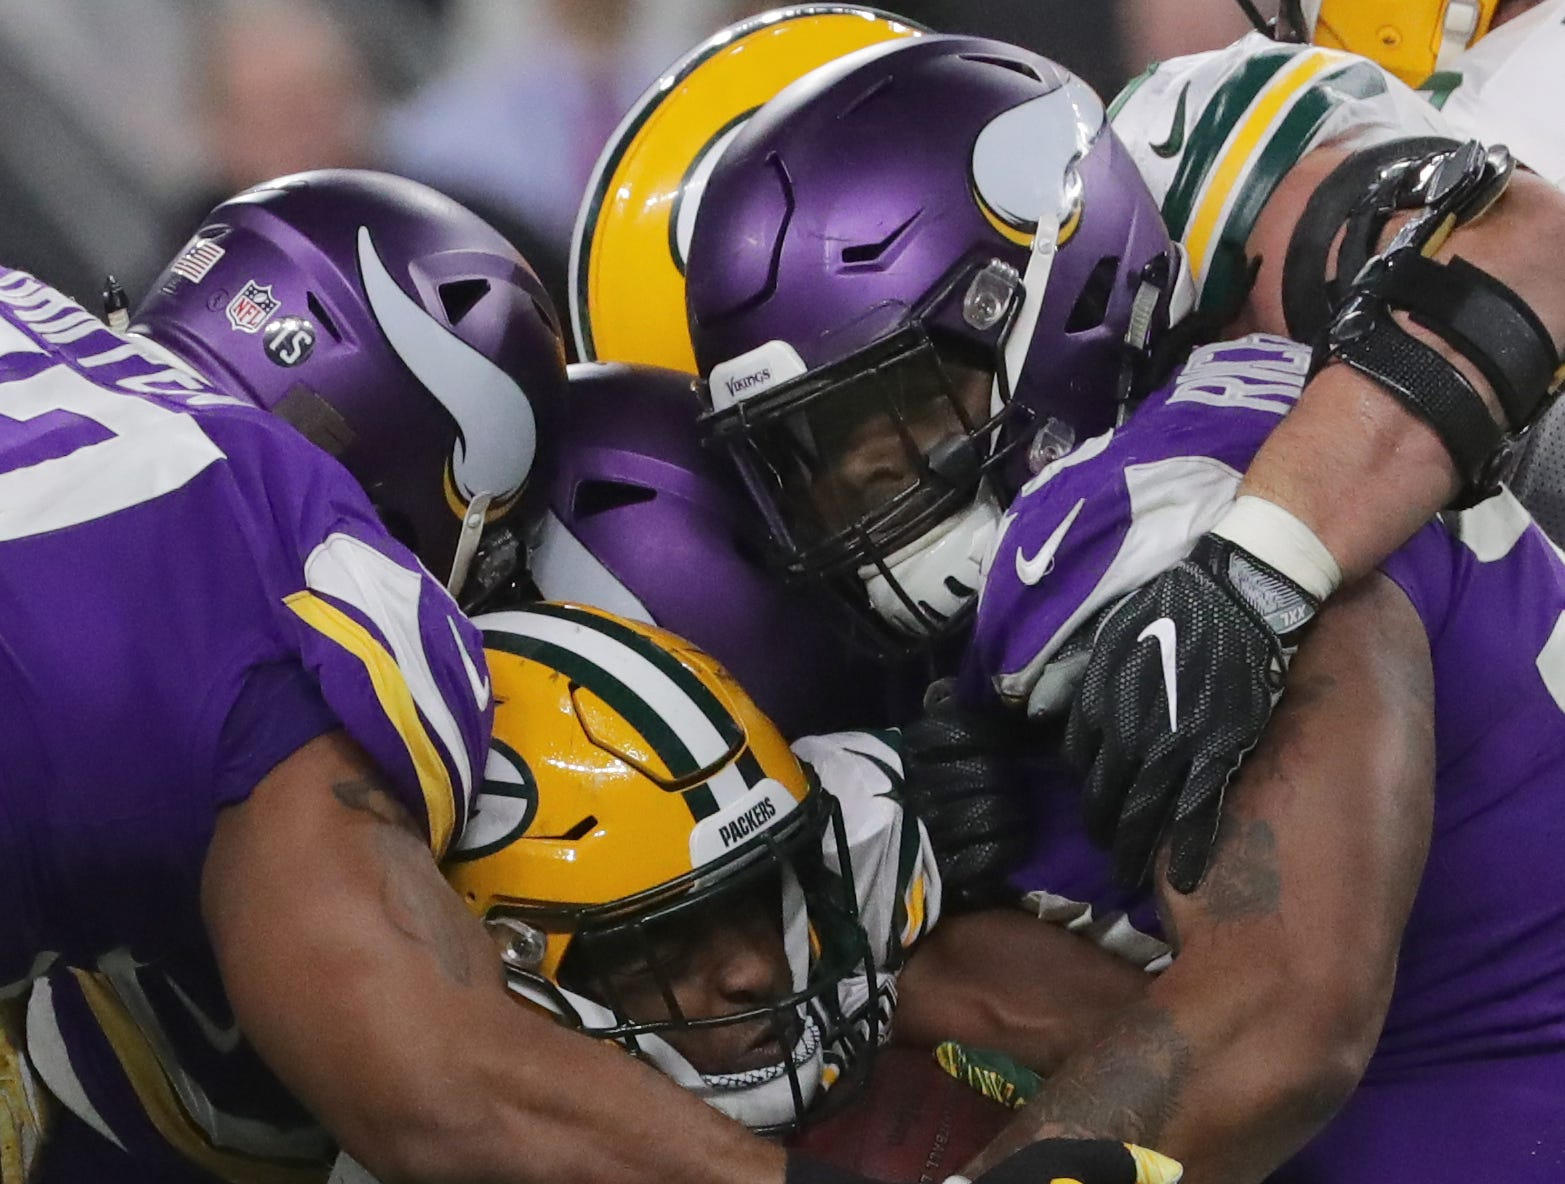 Green Bay Packers running back Aaron Jones (33) is smothered by the Minnesotas Vikings defense during the third quarter of their game Sunday, November 25, 2018 at U.S. Bank Stadium in Minneapolis, Minn. The Minnesota Vikings beat the Green Bay Packers 24-17.